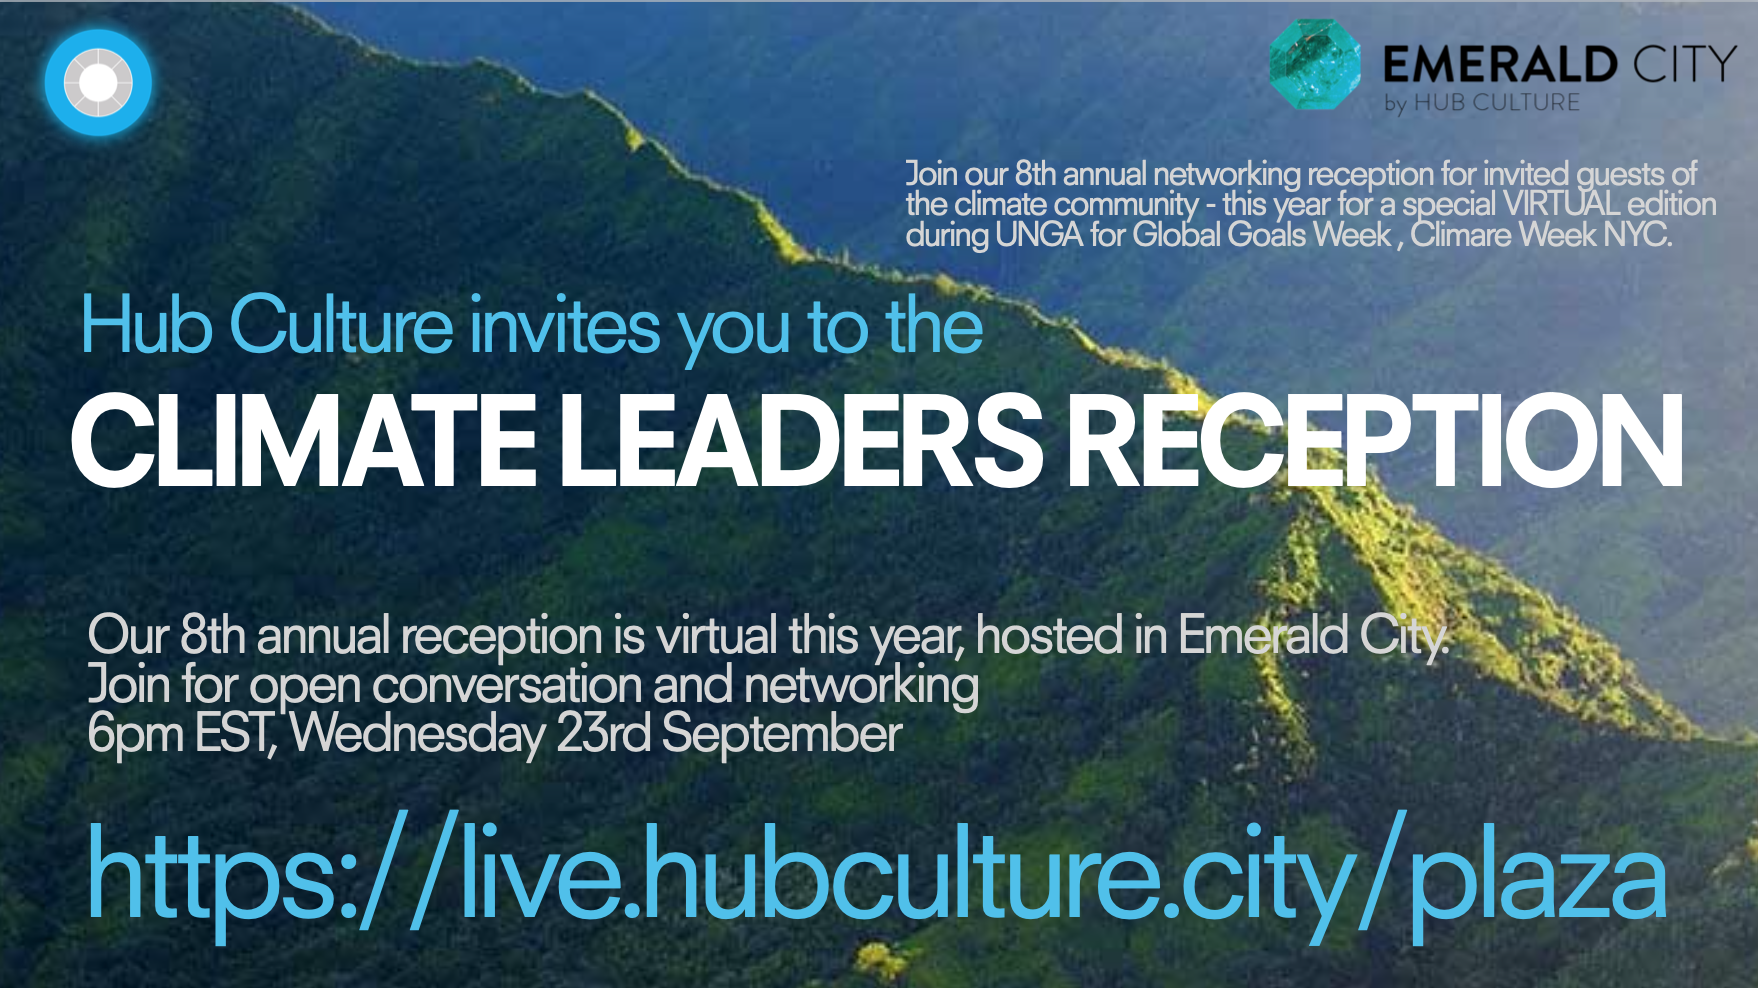 Join us for our 8th annual Climate Leaders Reception (a special VIRTUAL edition)